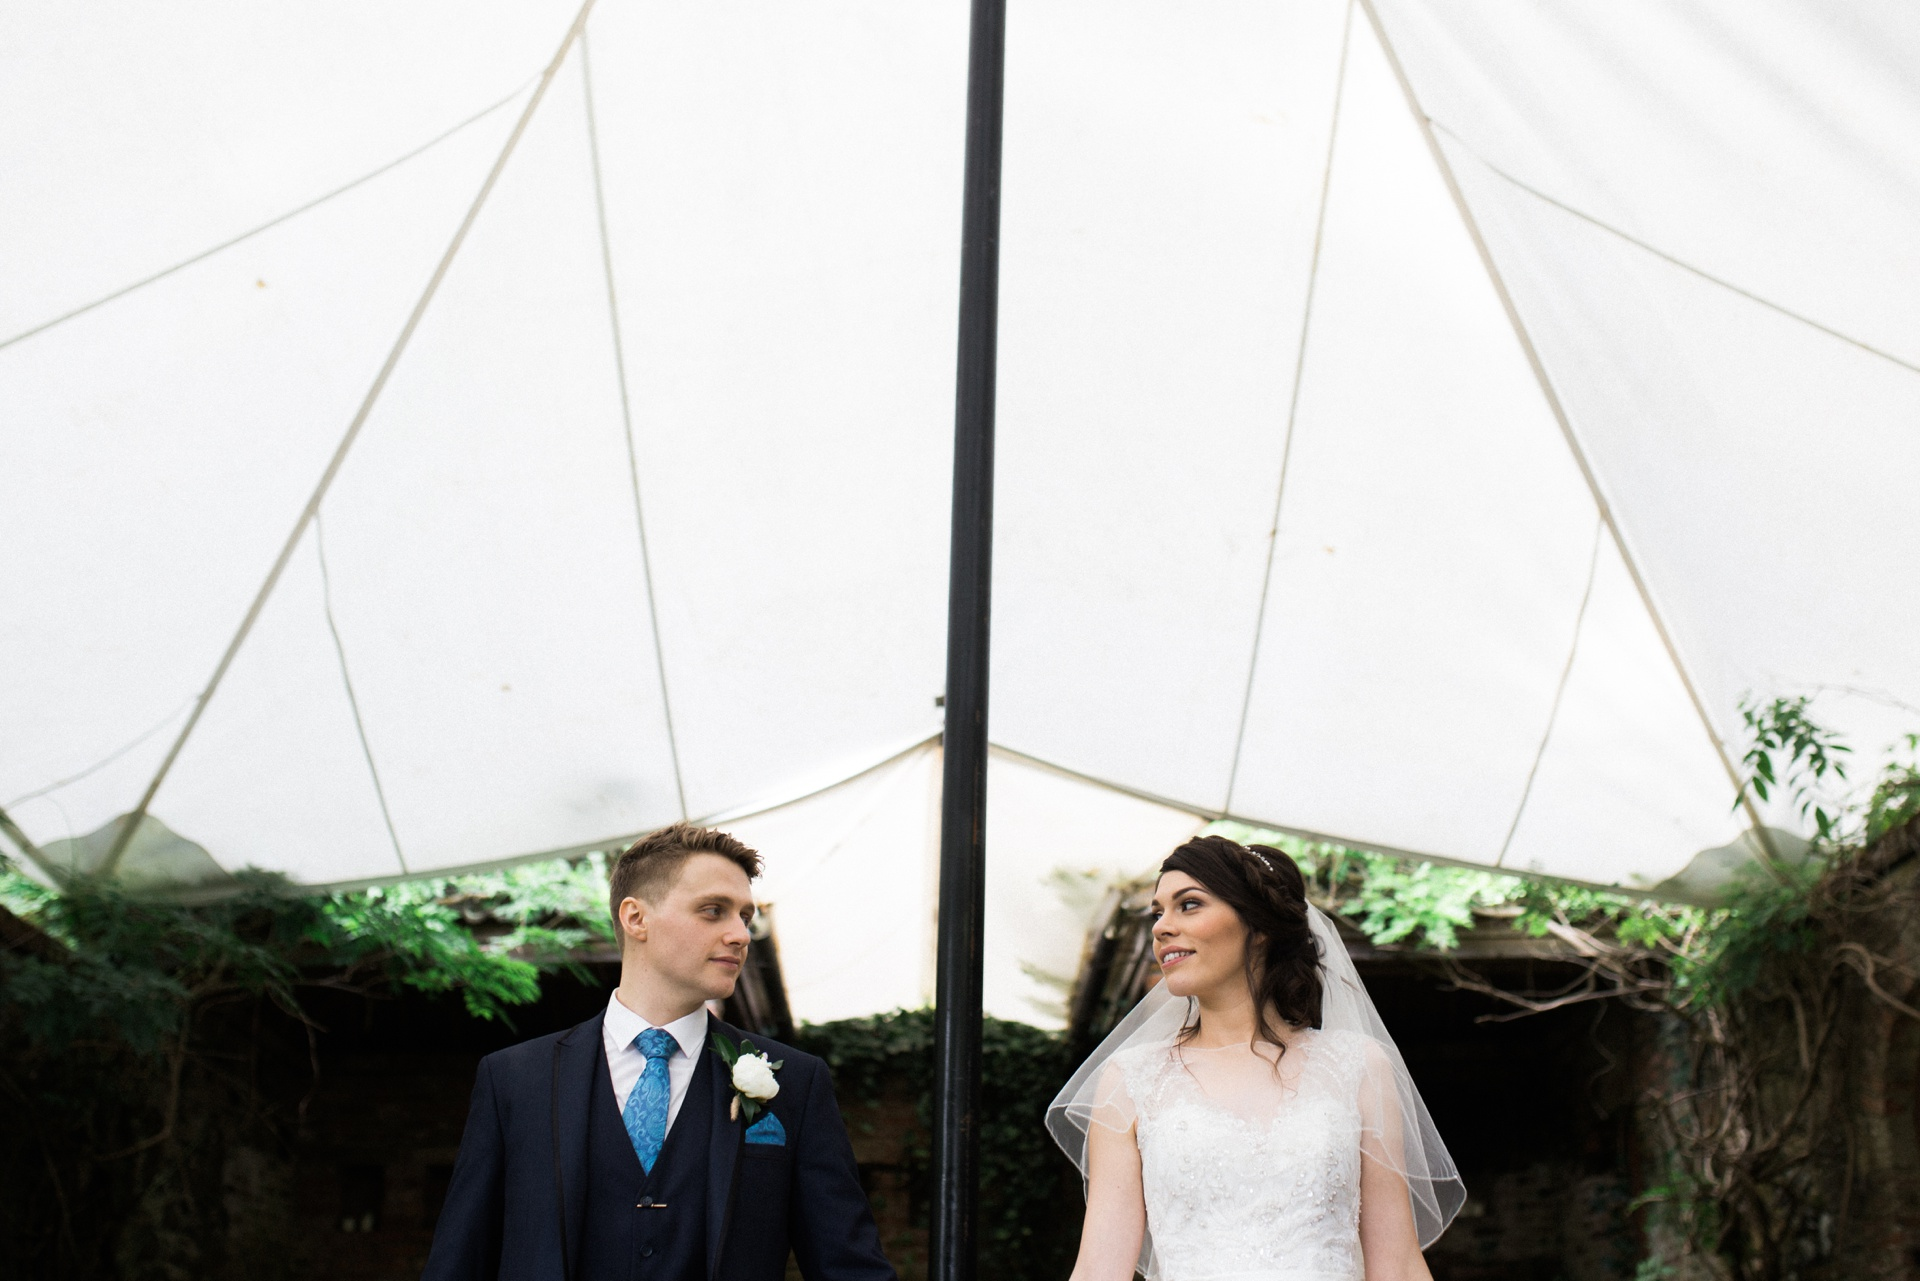 We_Can_Be_Heroes_Photography_Wedding_Dreanagh_House_Derry_0221